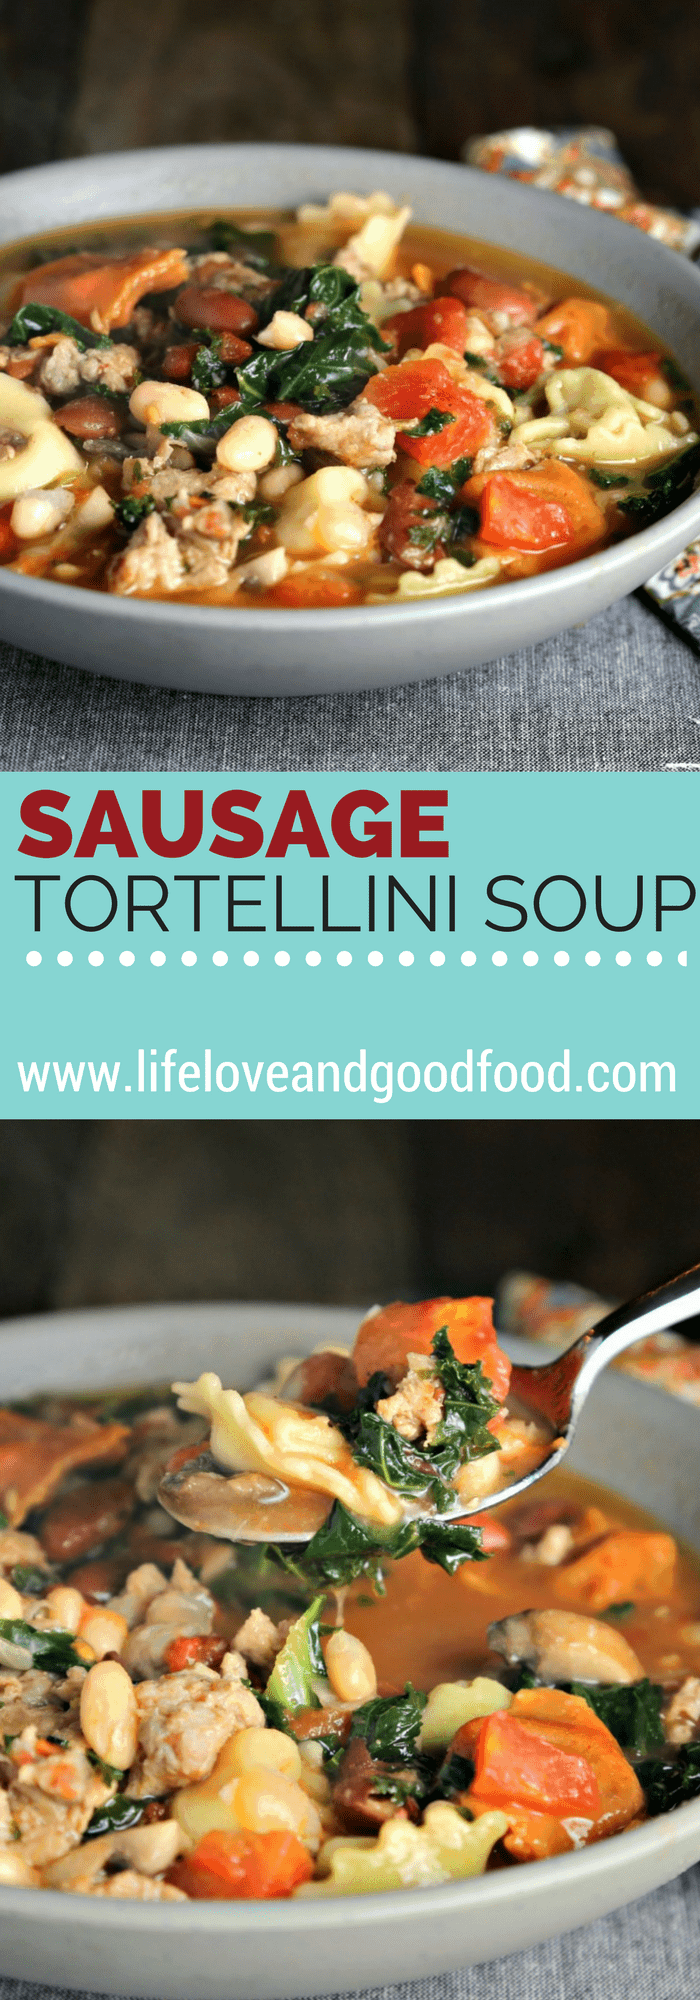 Rustic Sausage Tortellini Soup | Life, Love, and Good Food